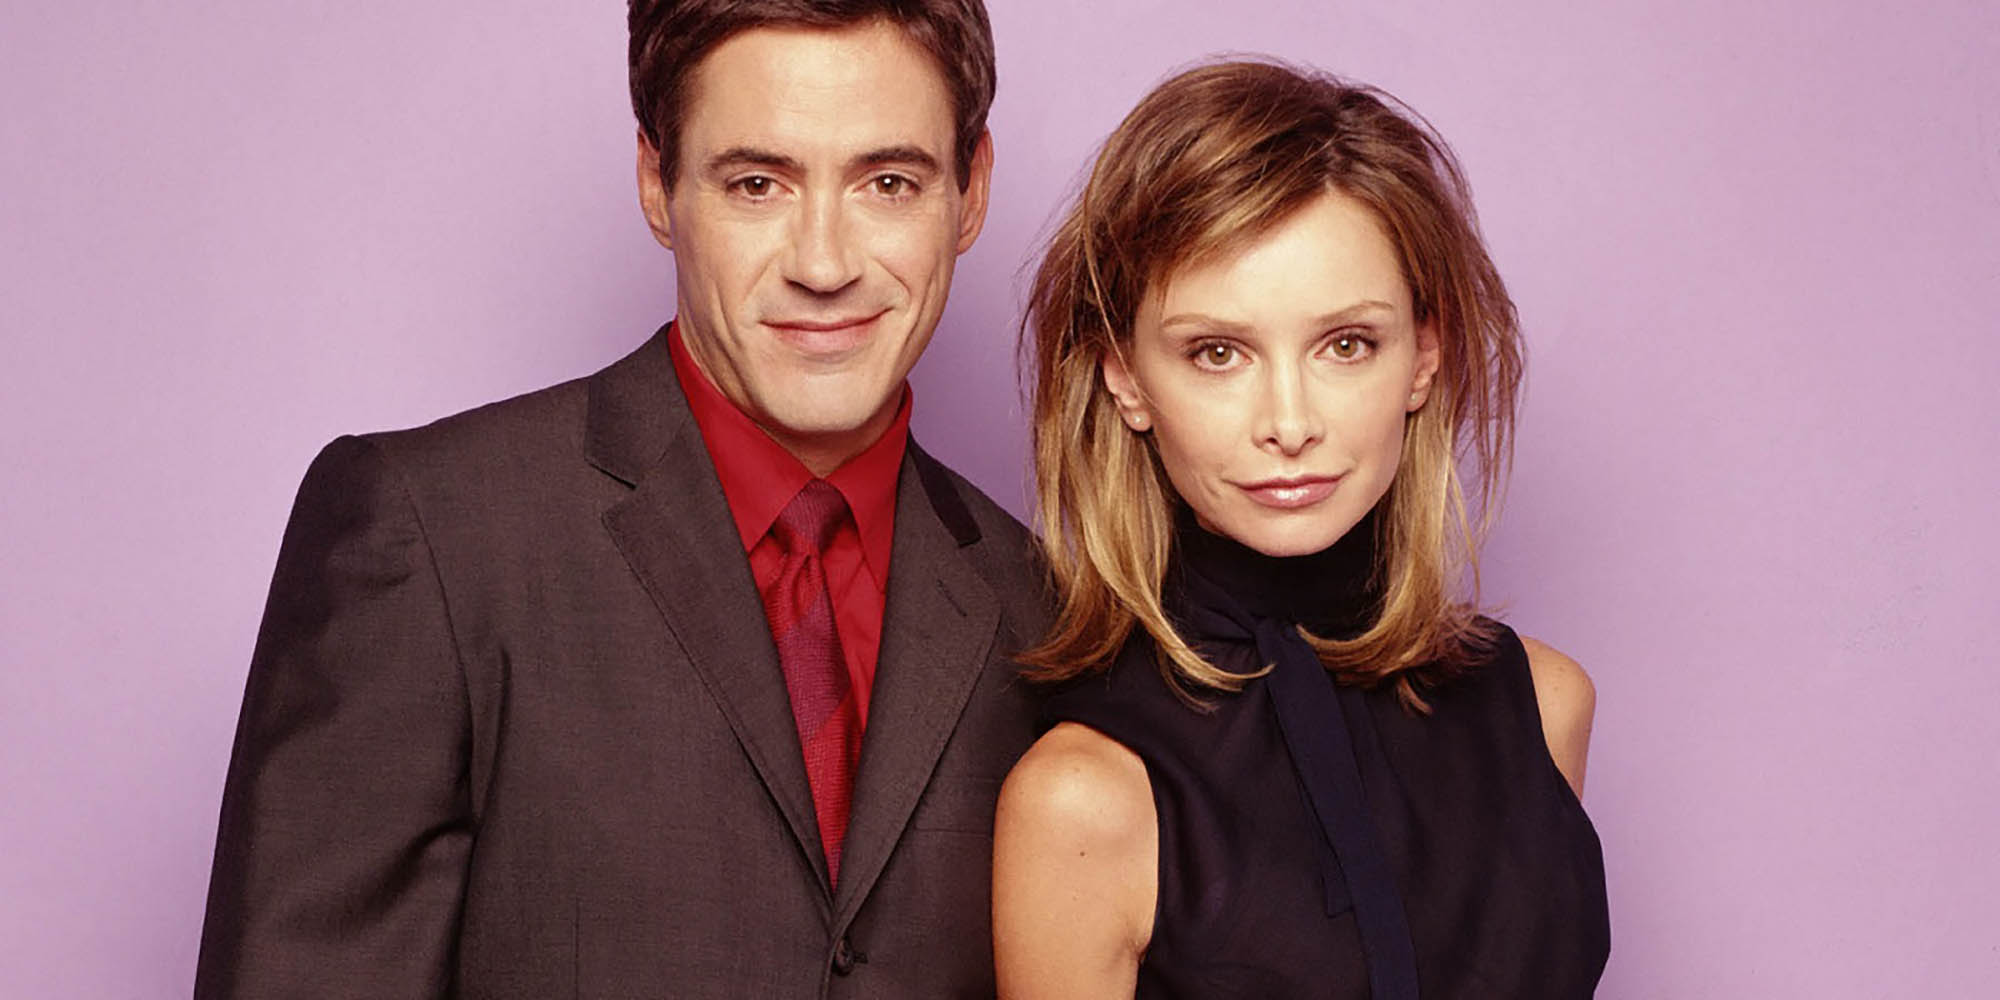 THE DOC(MANHATTAN) IS IN – Ally McBeal